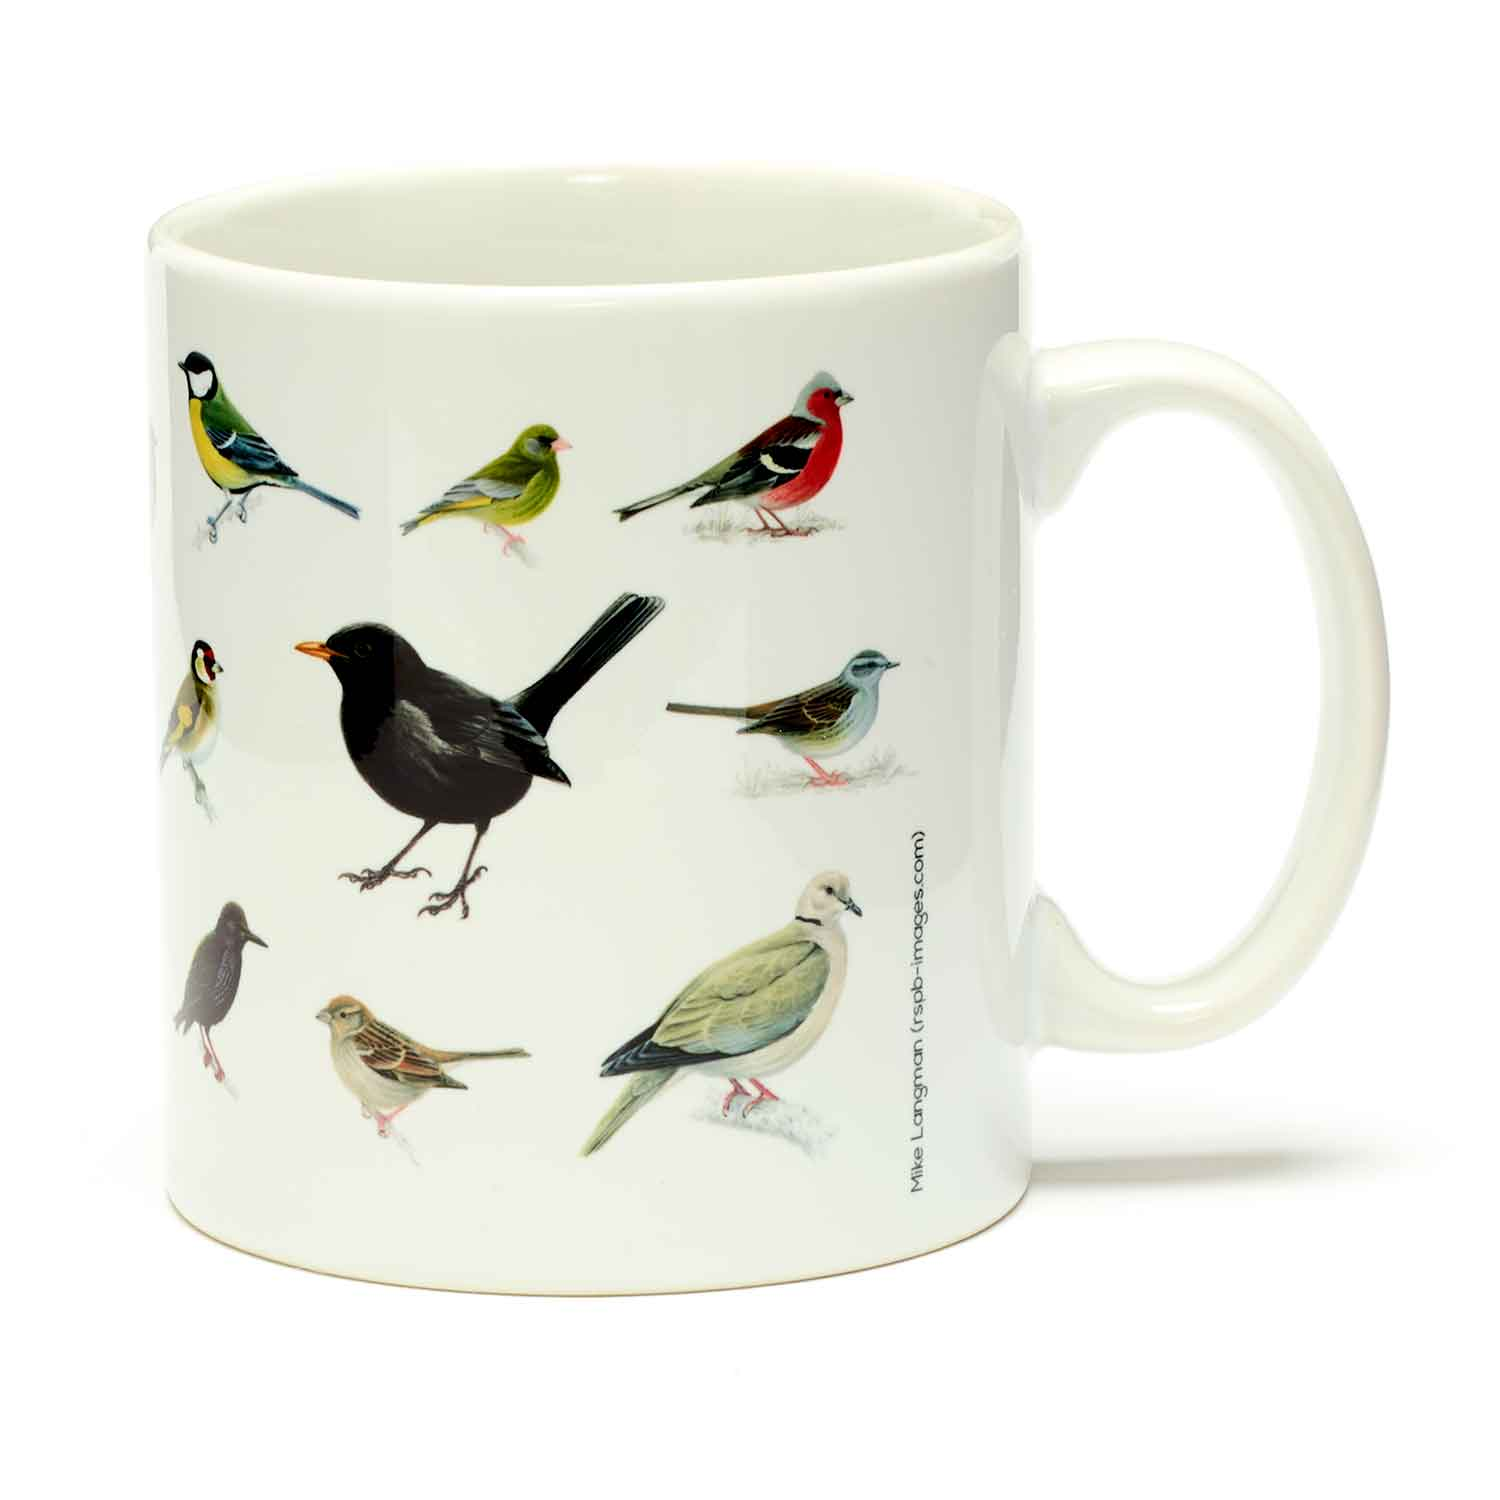 Big Garden Birdwatch mug 2021 product photo Side View -  - additional image 3 L